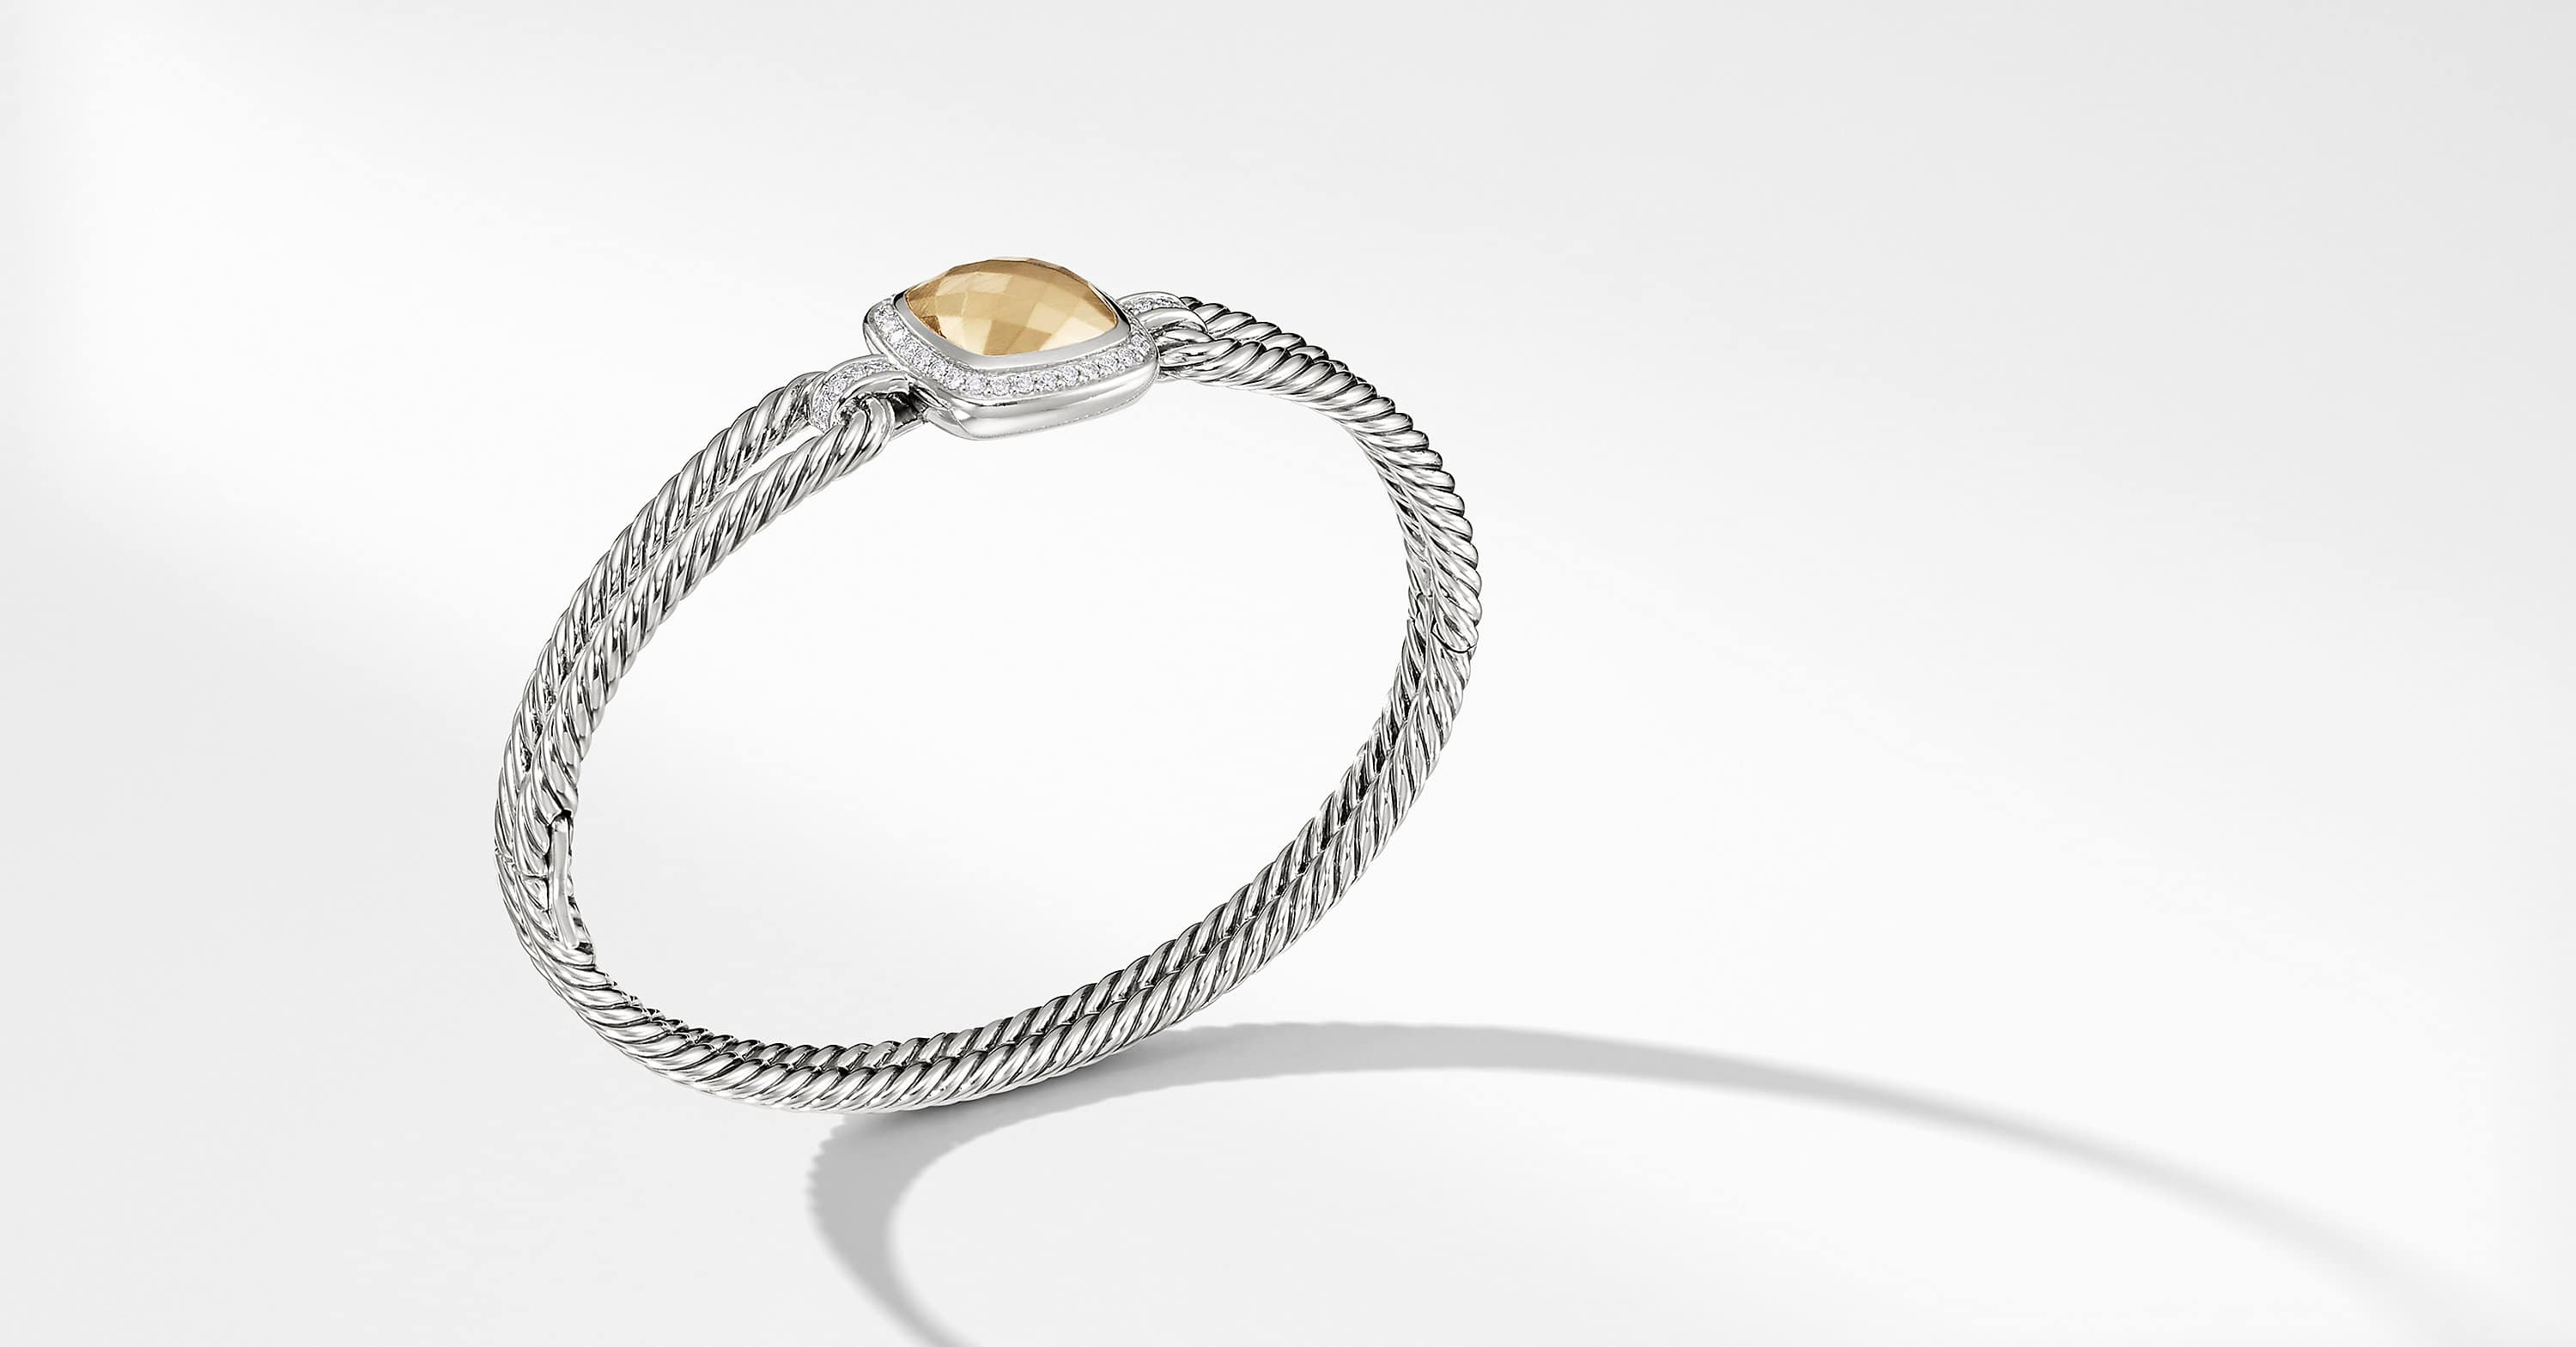 Albion Bracelet with Diamonds and 18K Gold, 6mm